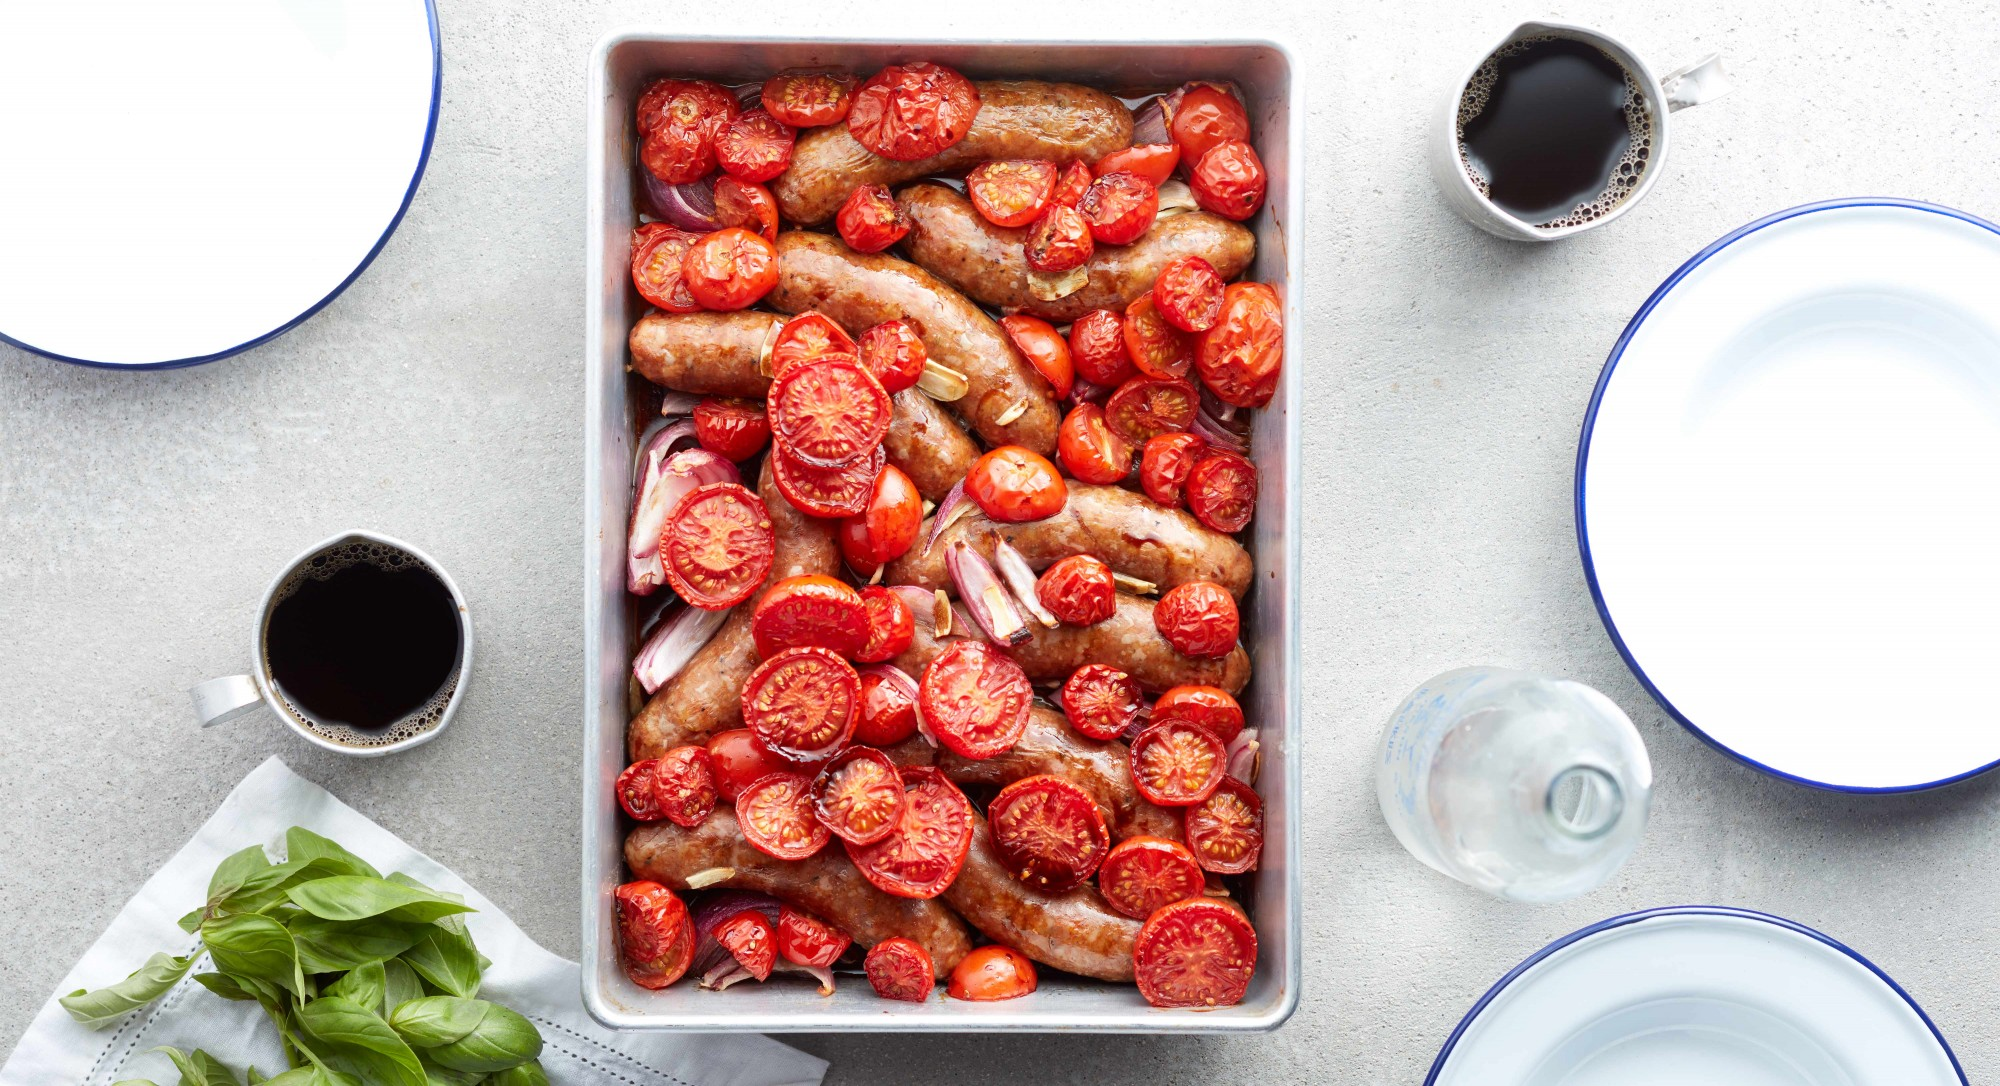 Baked Sausages With Roasted Tomatoes Recipe